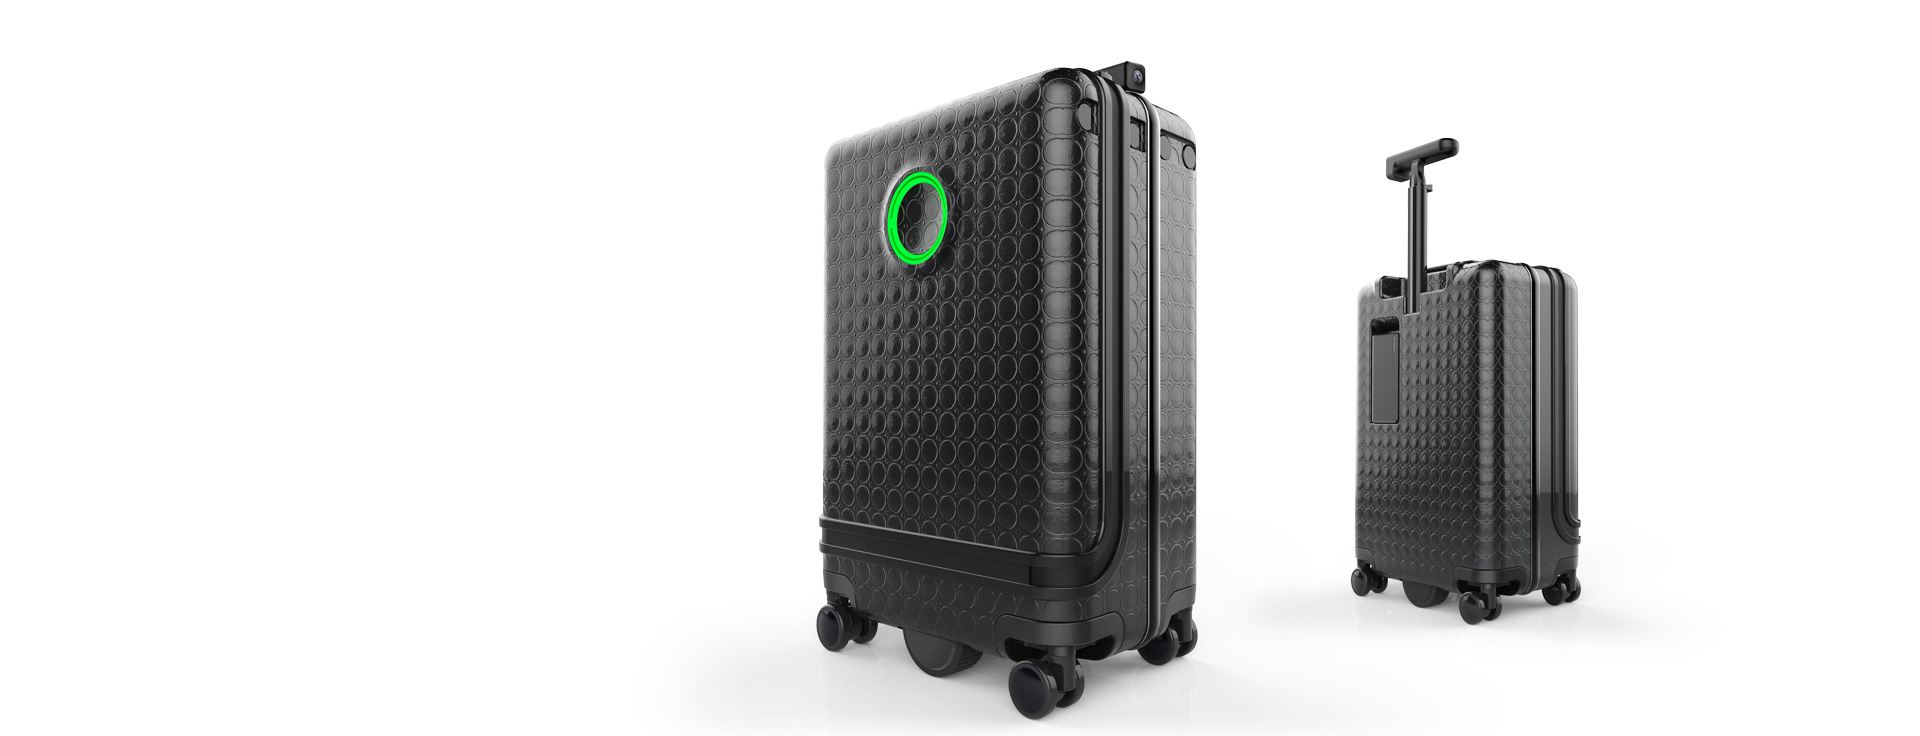 Airwheel SR3 self-following suitcase